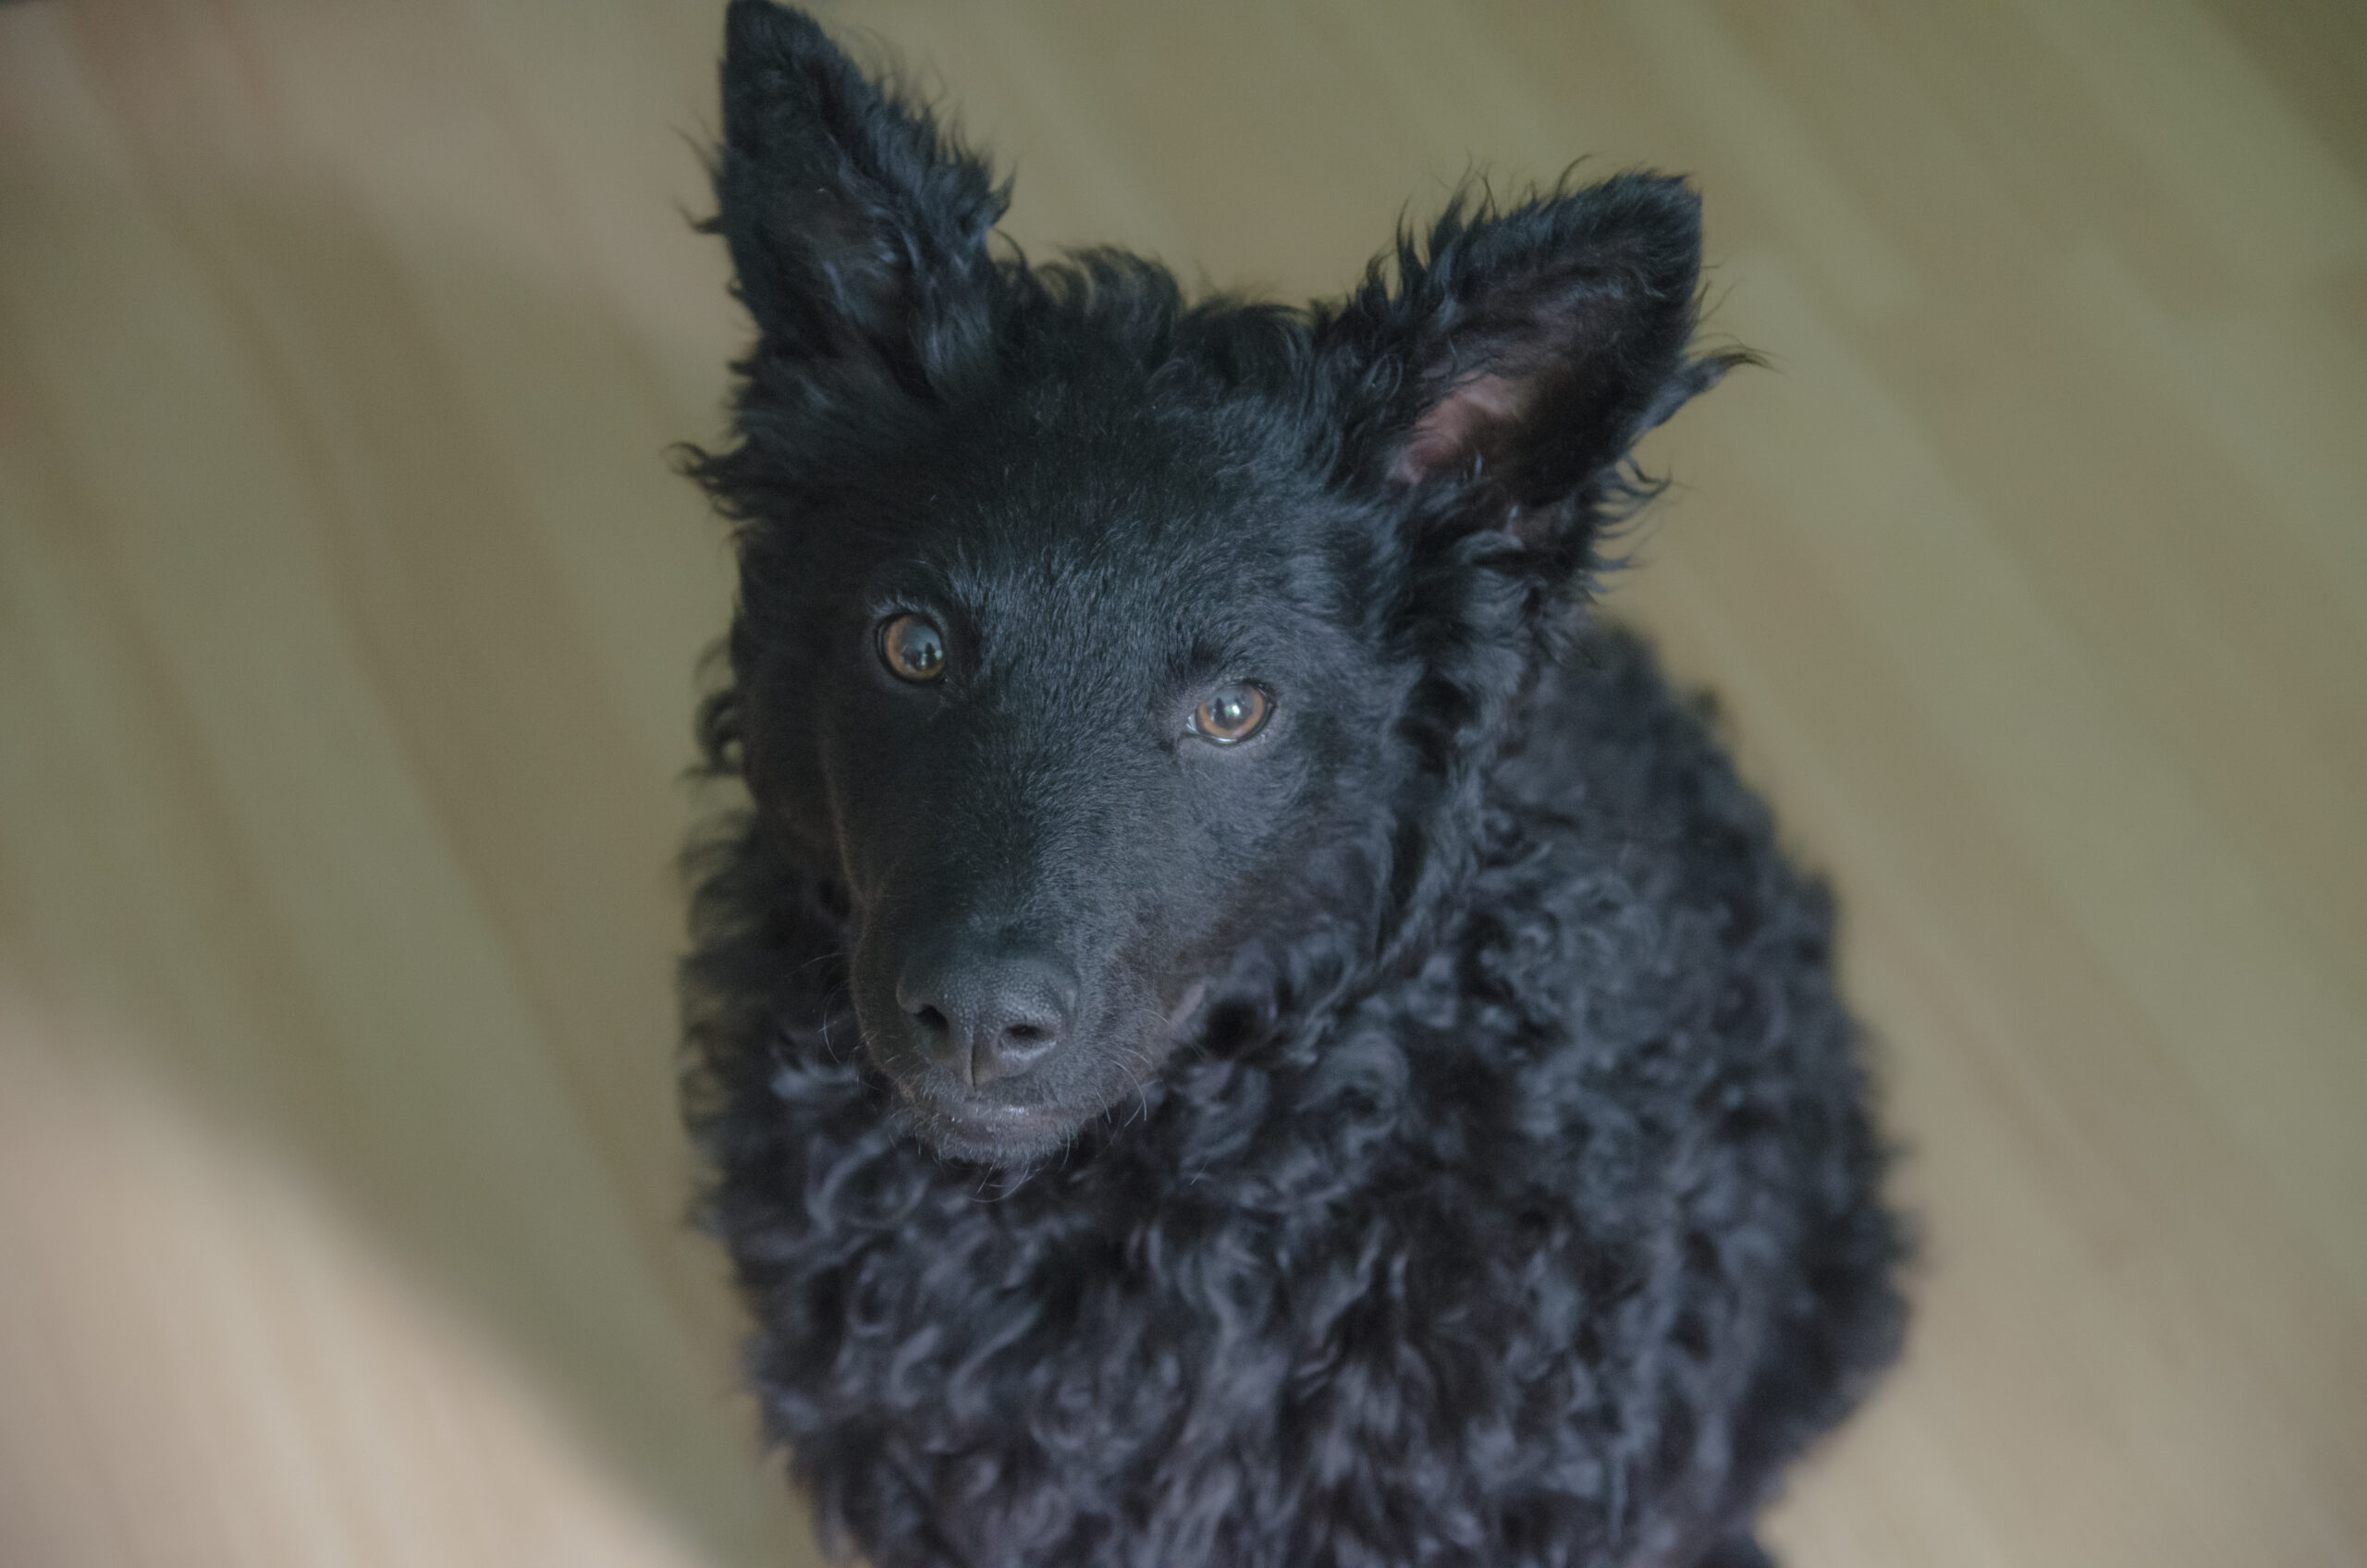 A black dog with pointy ears and a fur that would make some sheep jealous.